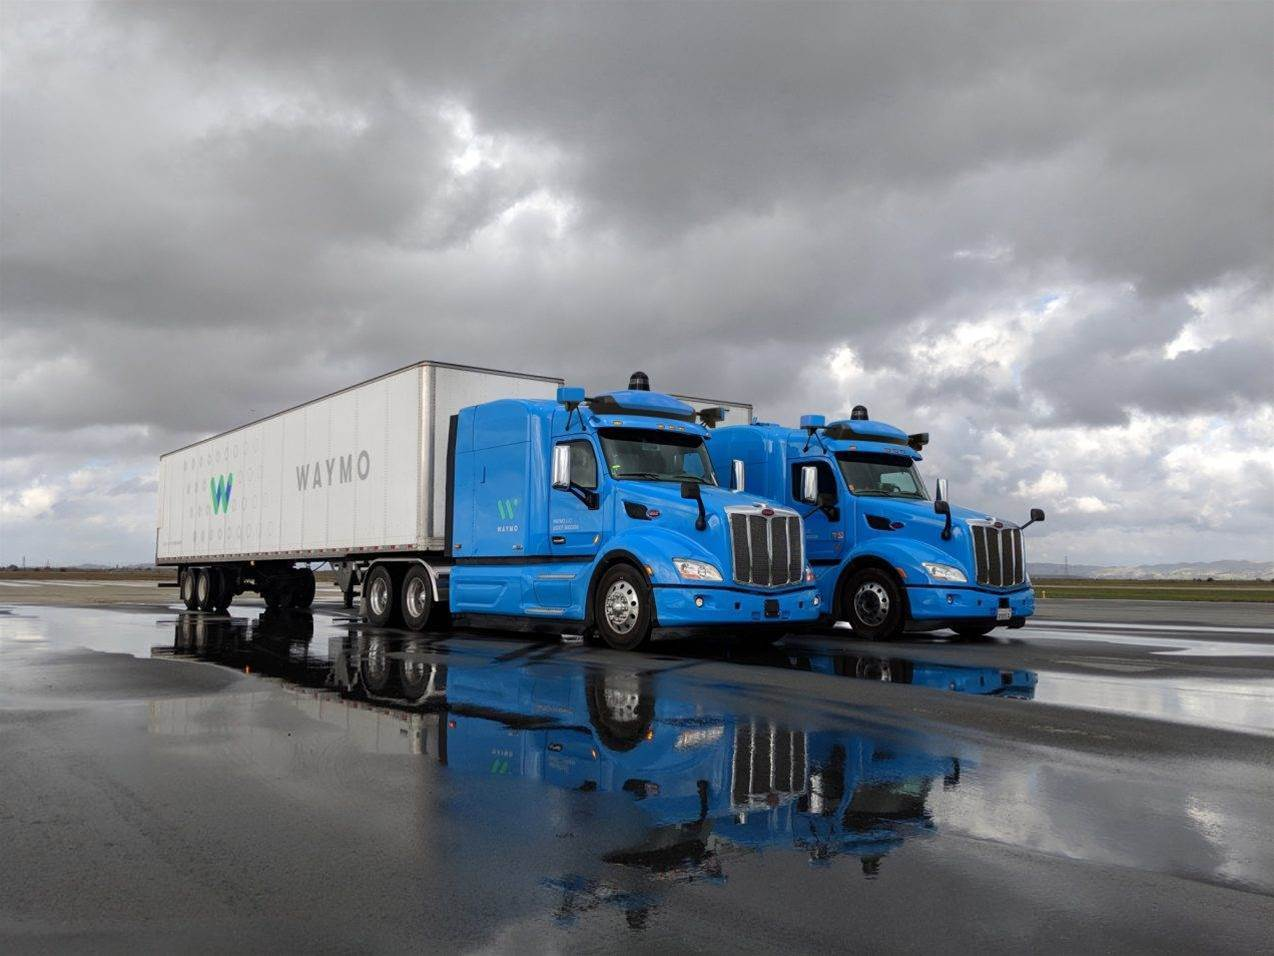 Waymo's self-driving trucks to haul cargo for Google data centres